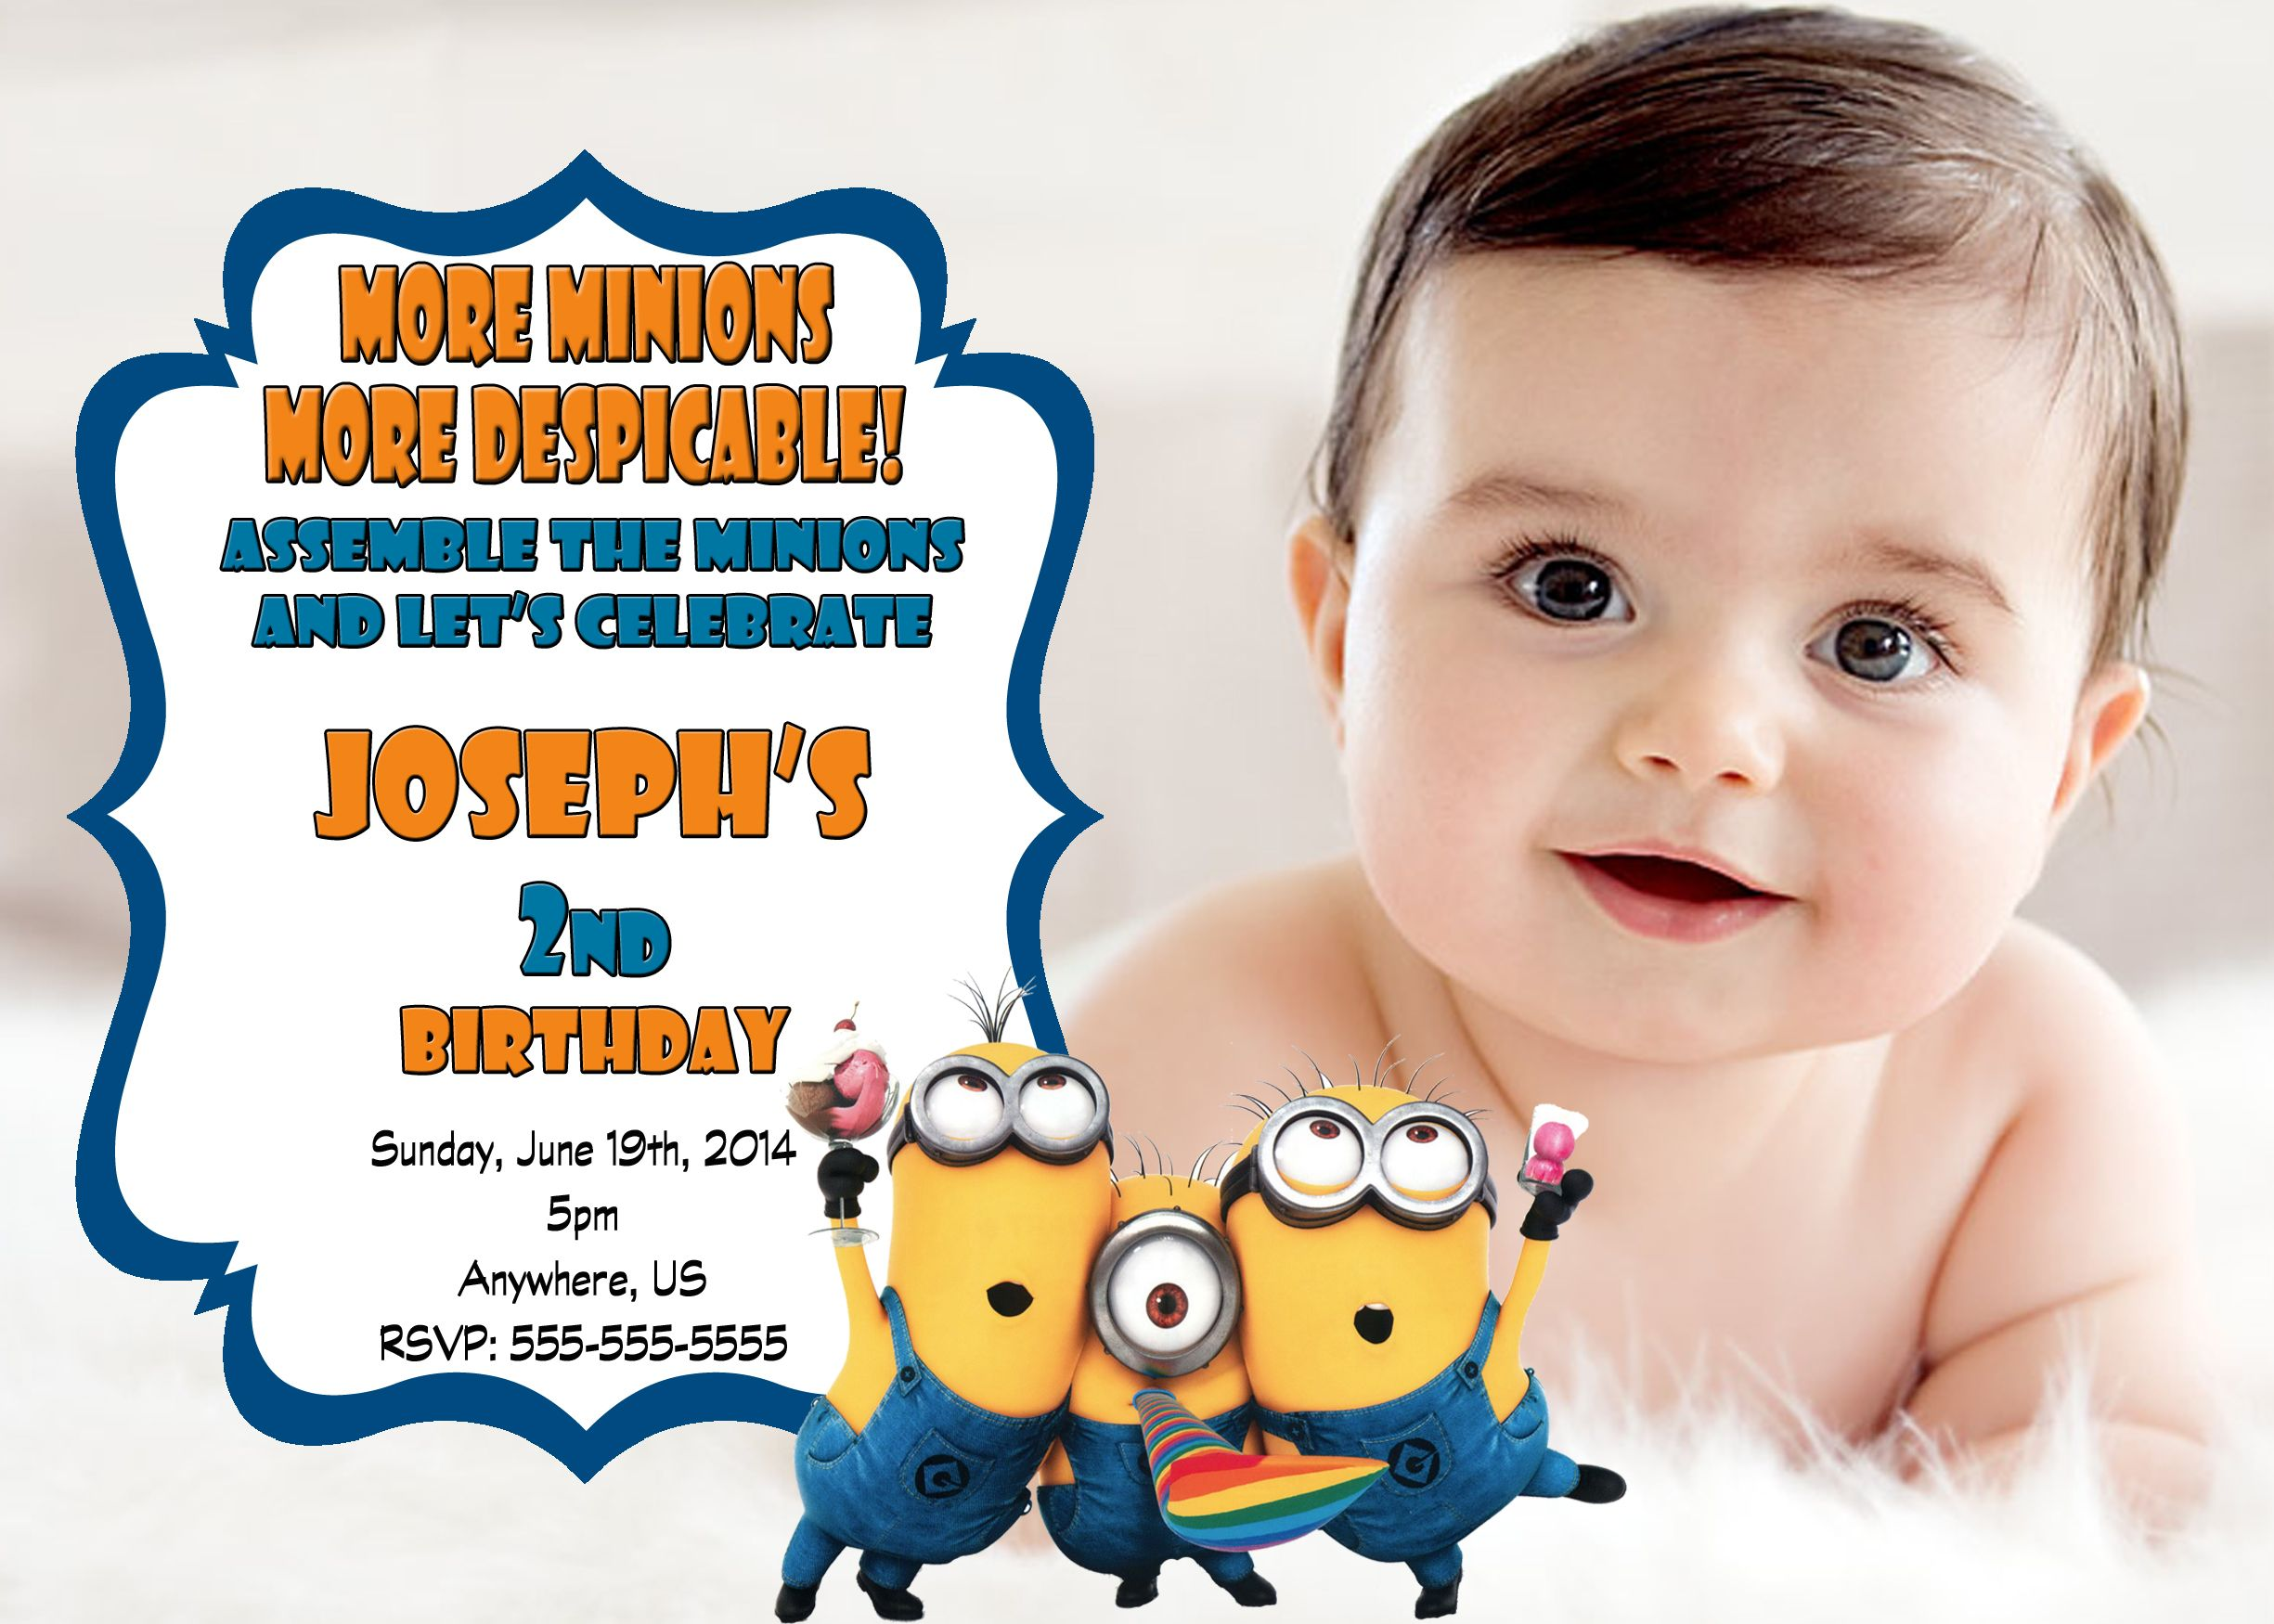 Despicable Me 2 Minions Birthday Party Invitations 899